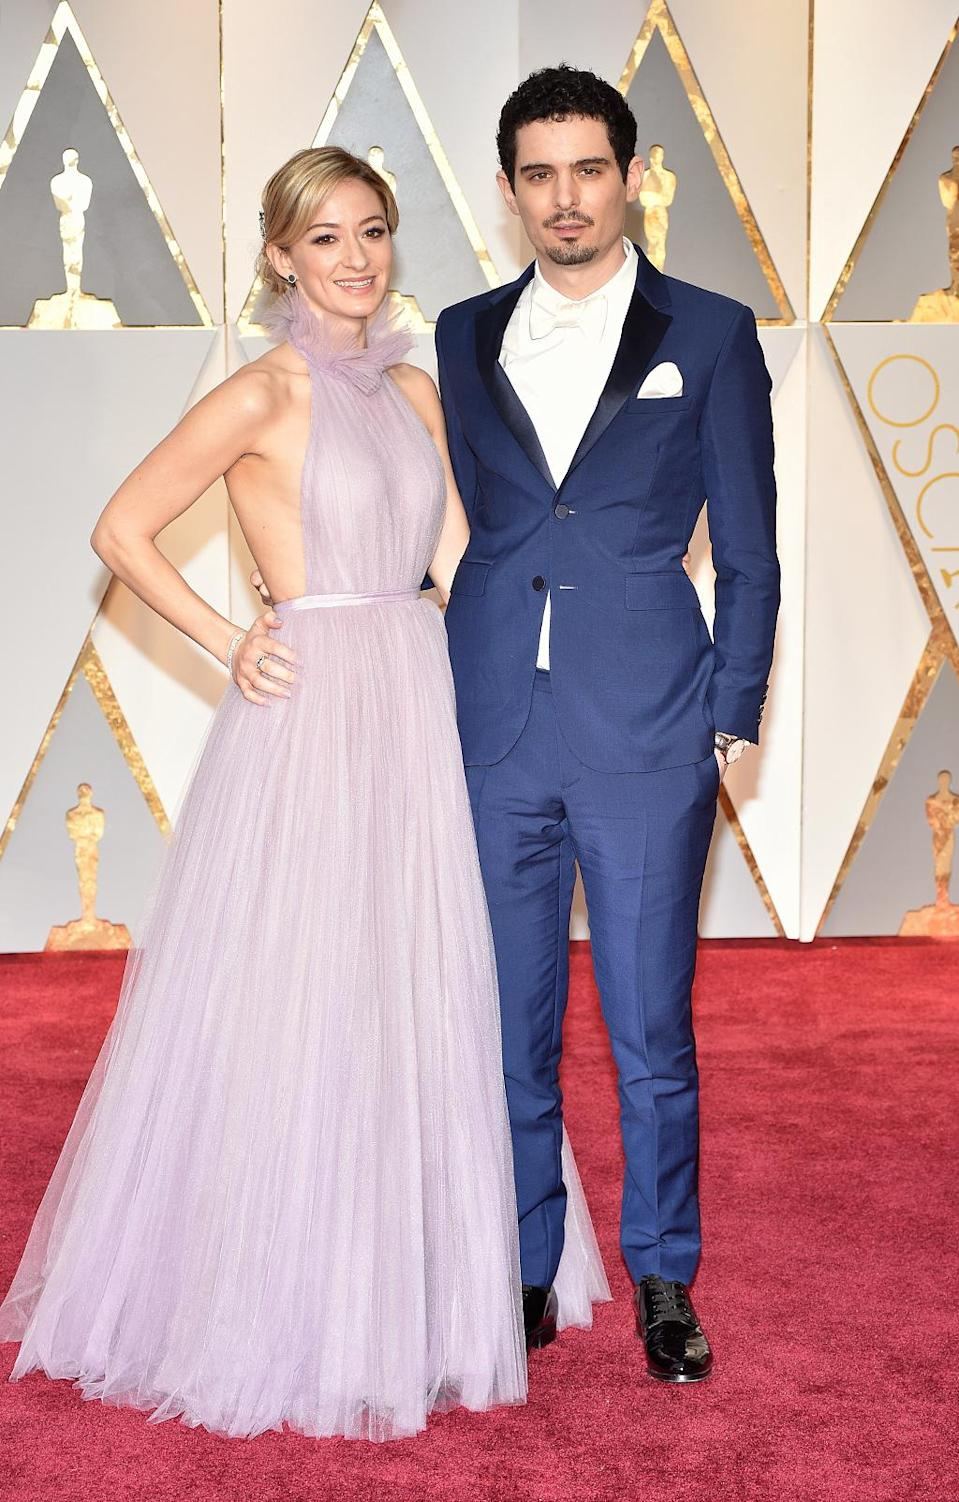 <p>Olivia Hamilton and Damien Chazelle attend the 89th Annual Academy Awards at Hollywood & Highland Center on February 26, 2017 in Hollywood, California. (Photo by Kevin Mazur/Getty Images) </p>